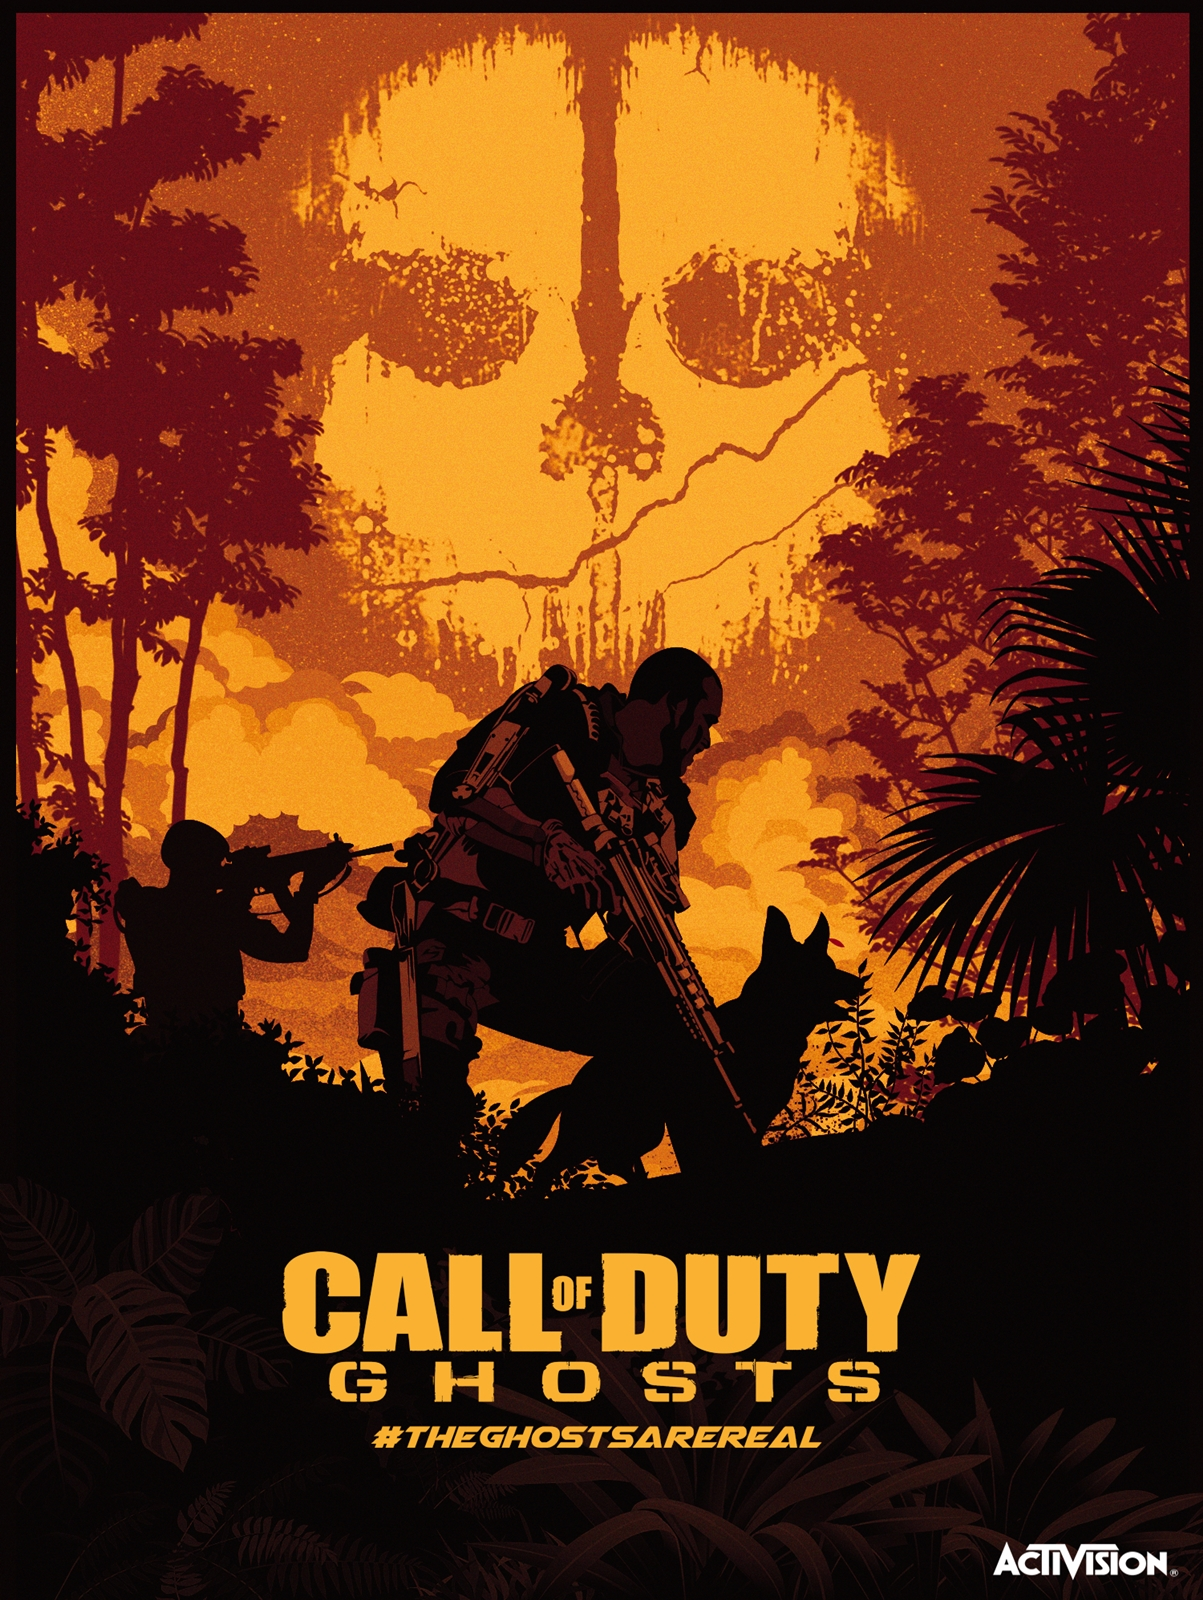 Call of Duty: Ghosts - PosterSpy